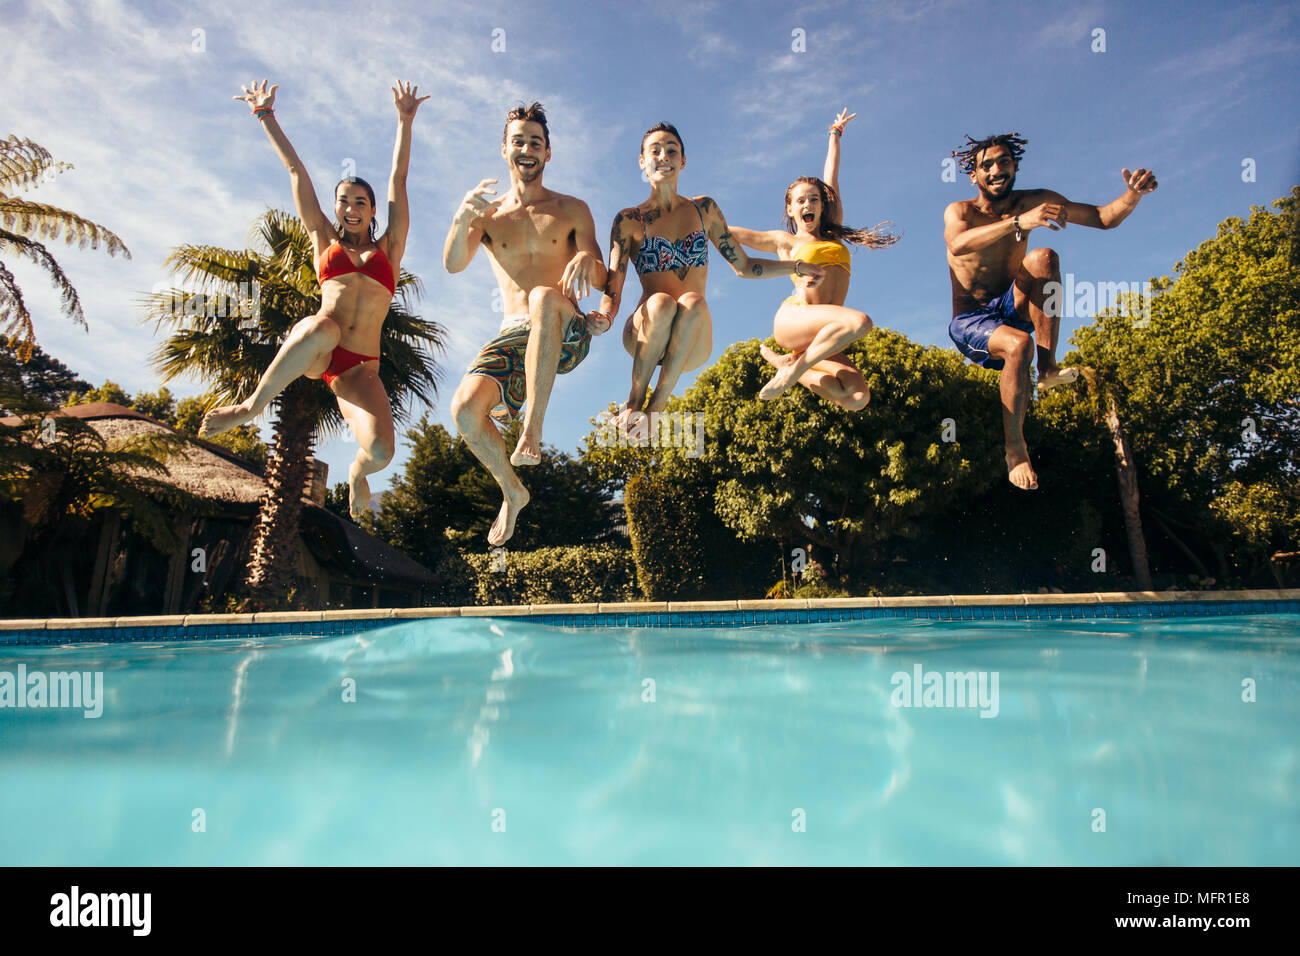 Group Of Crazy Young People Jumping Into A Swimming Pool Friends Having Fun At Holiday Resort